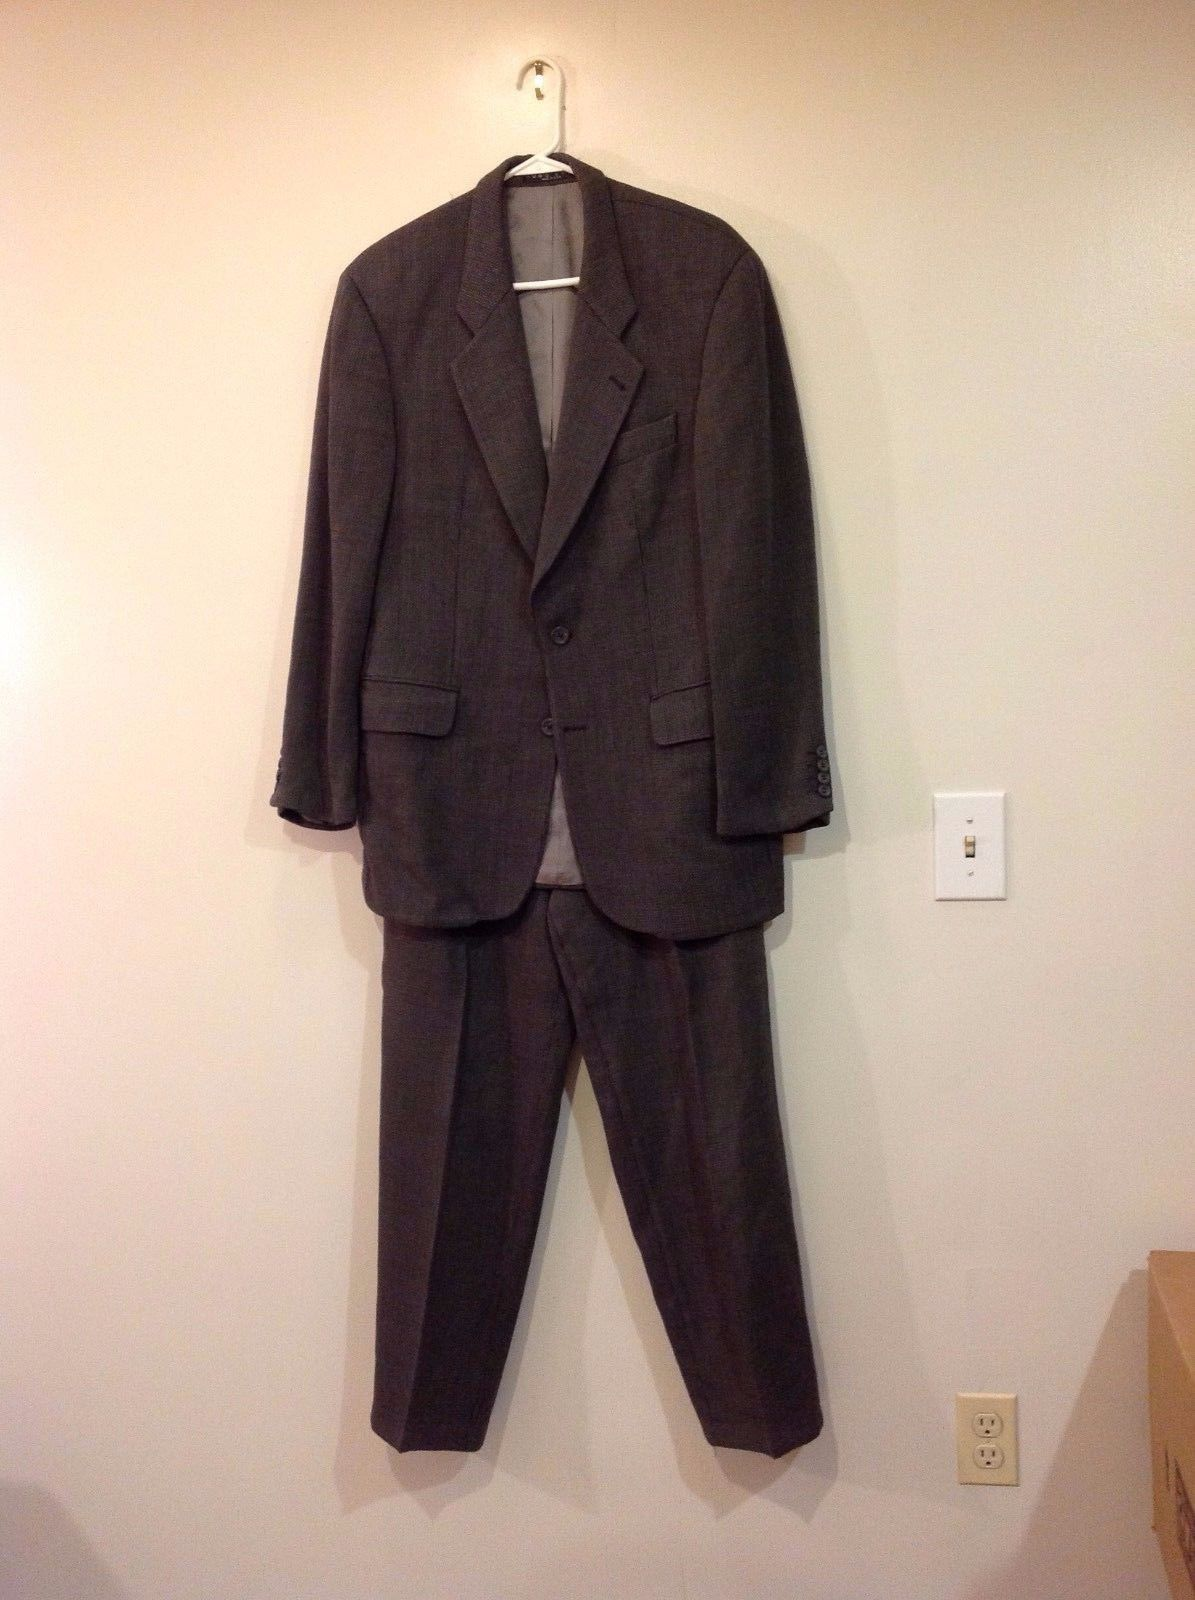 Man's  two piece suit jacket pants Hugo Boss black w white dots gray